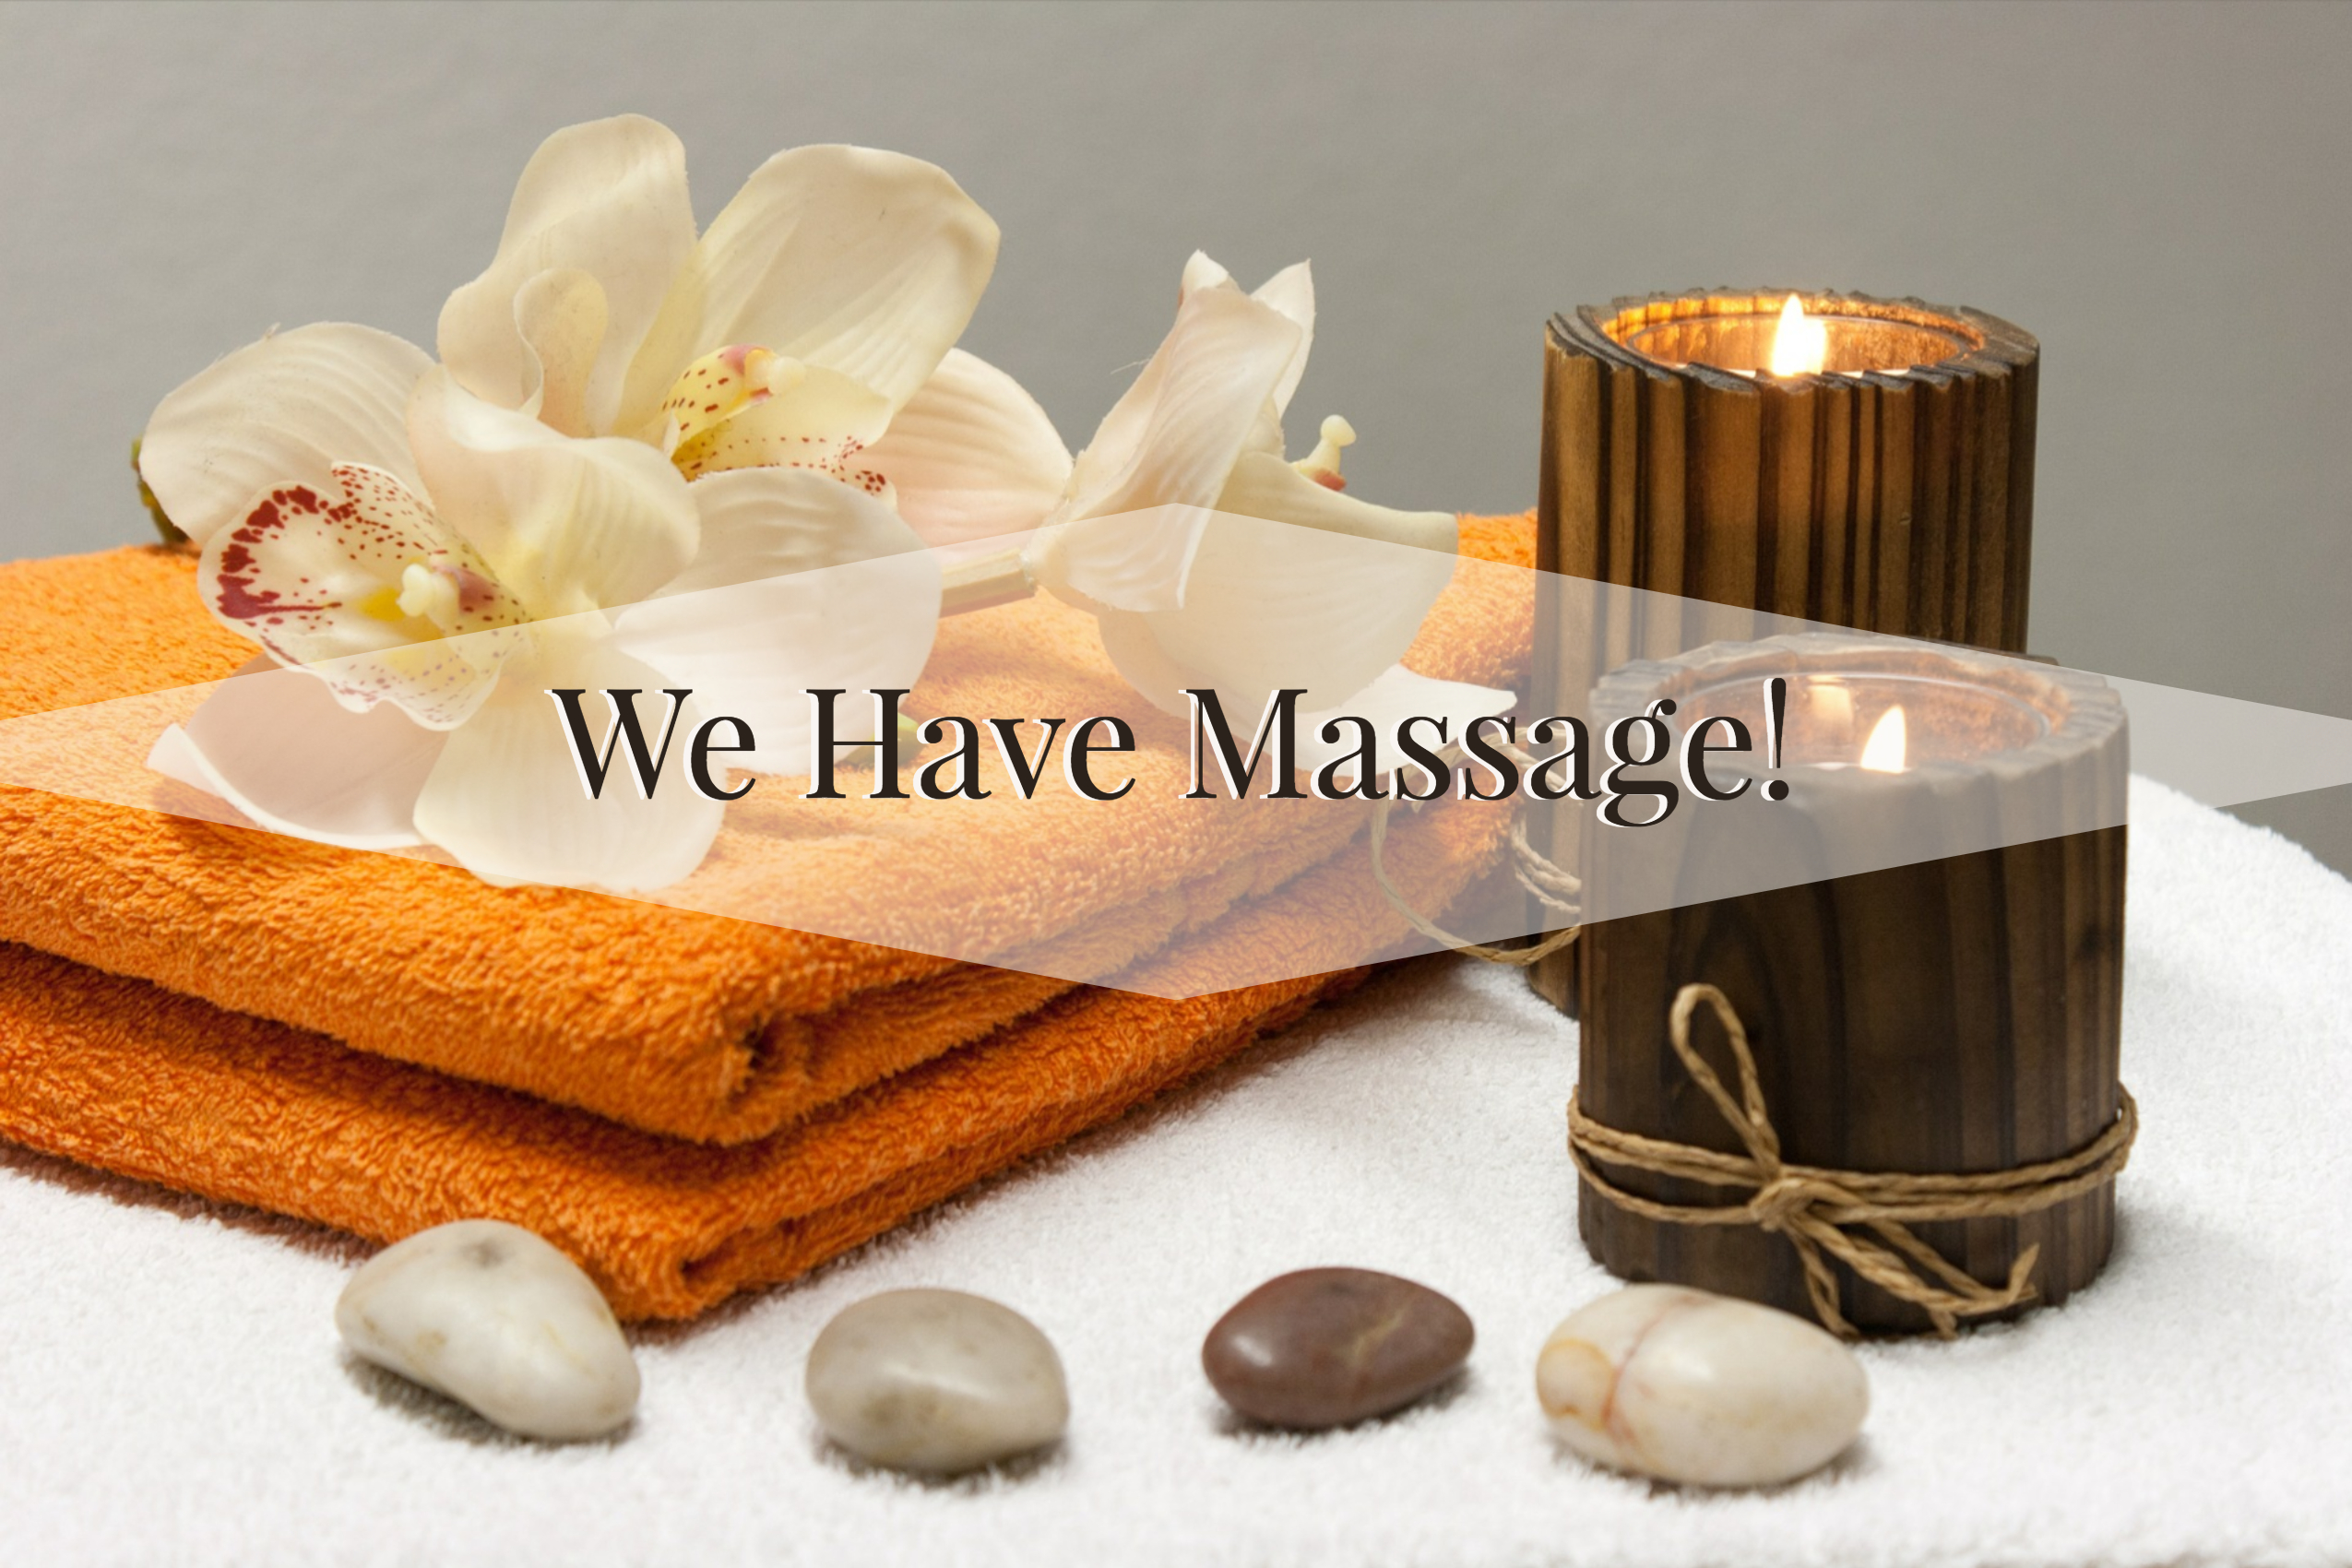 massage therapy supplies